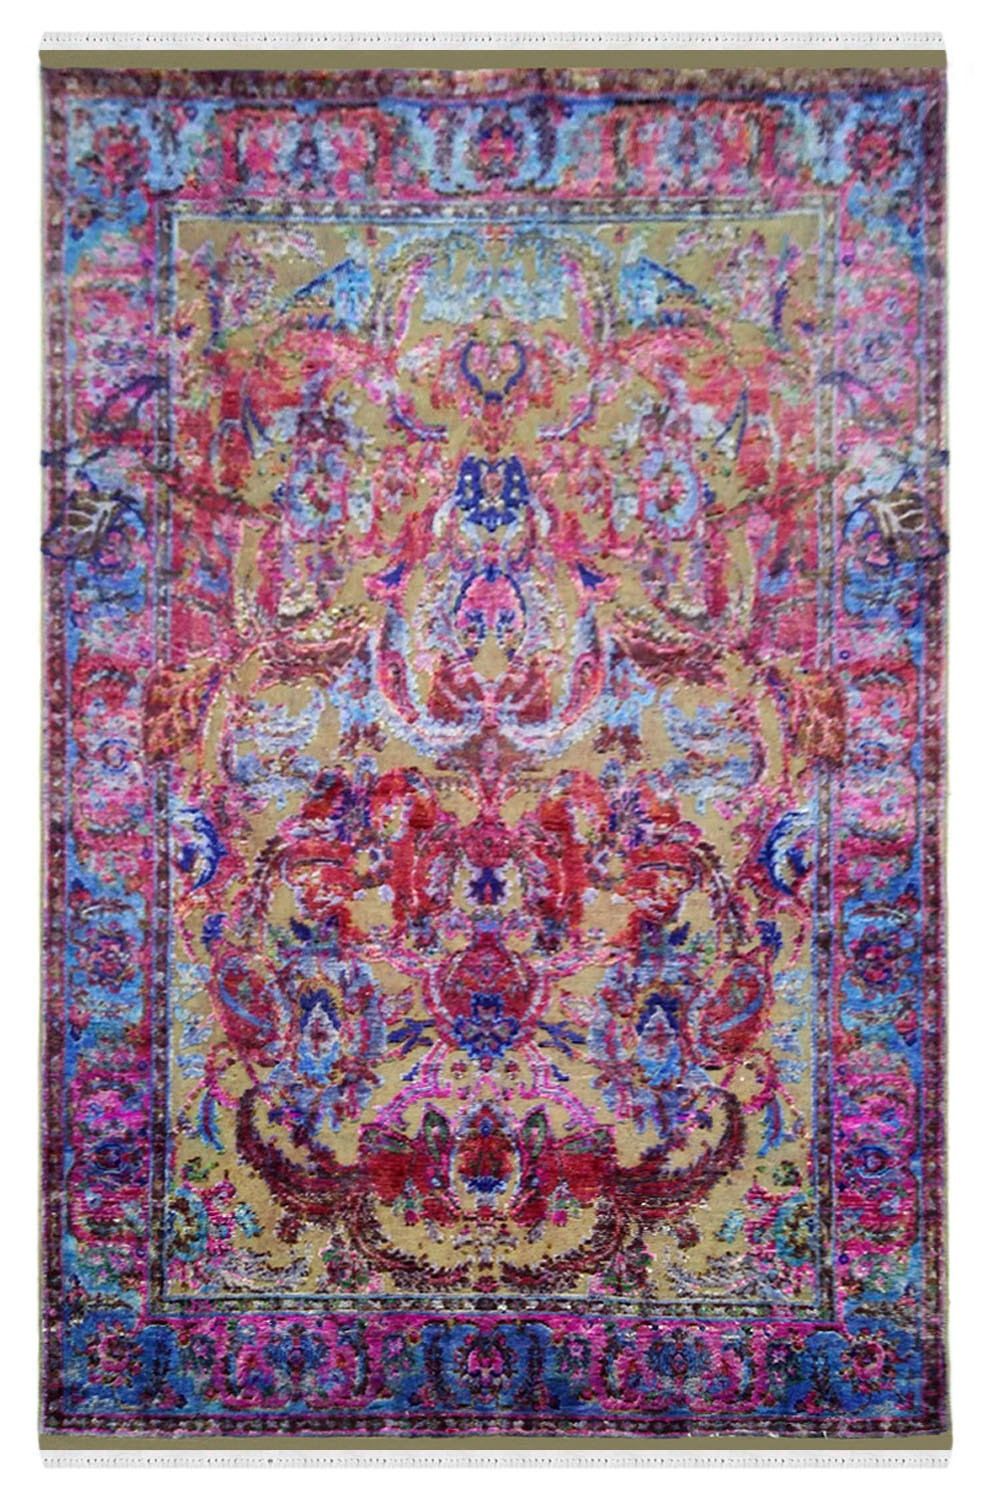 Pink Dragon Handmade Sari Silk Modern Area Rugs And Carpets Online